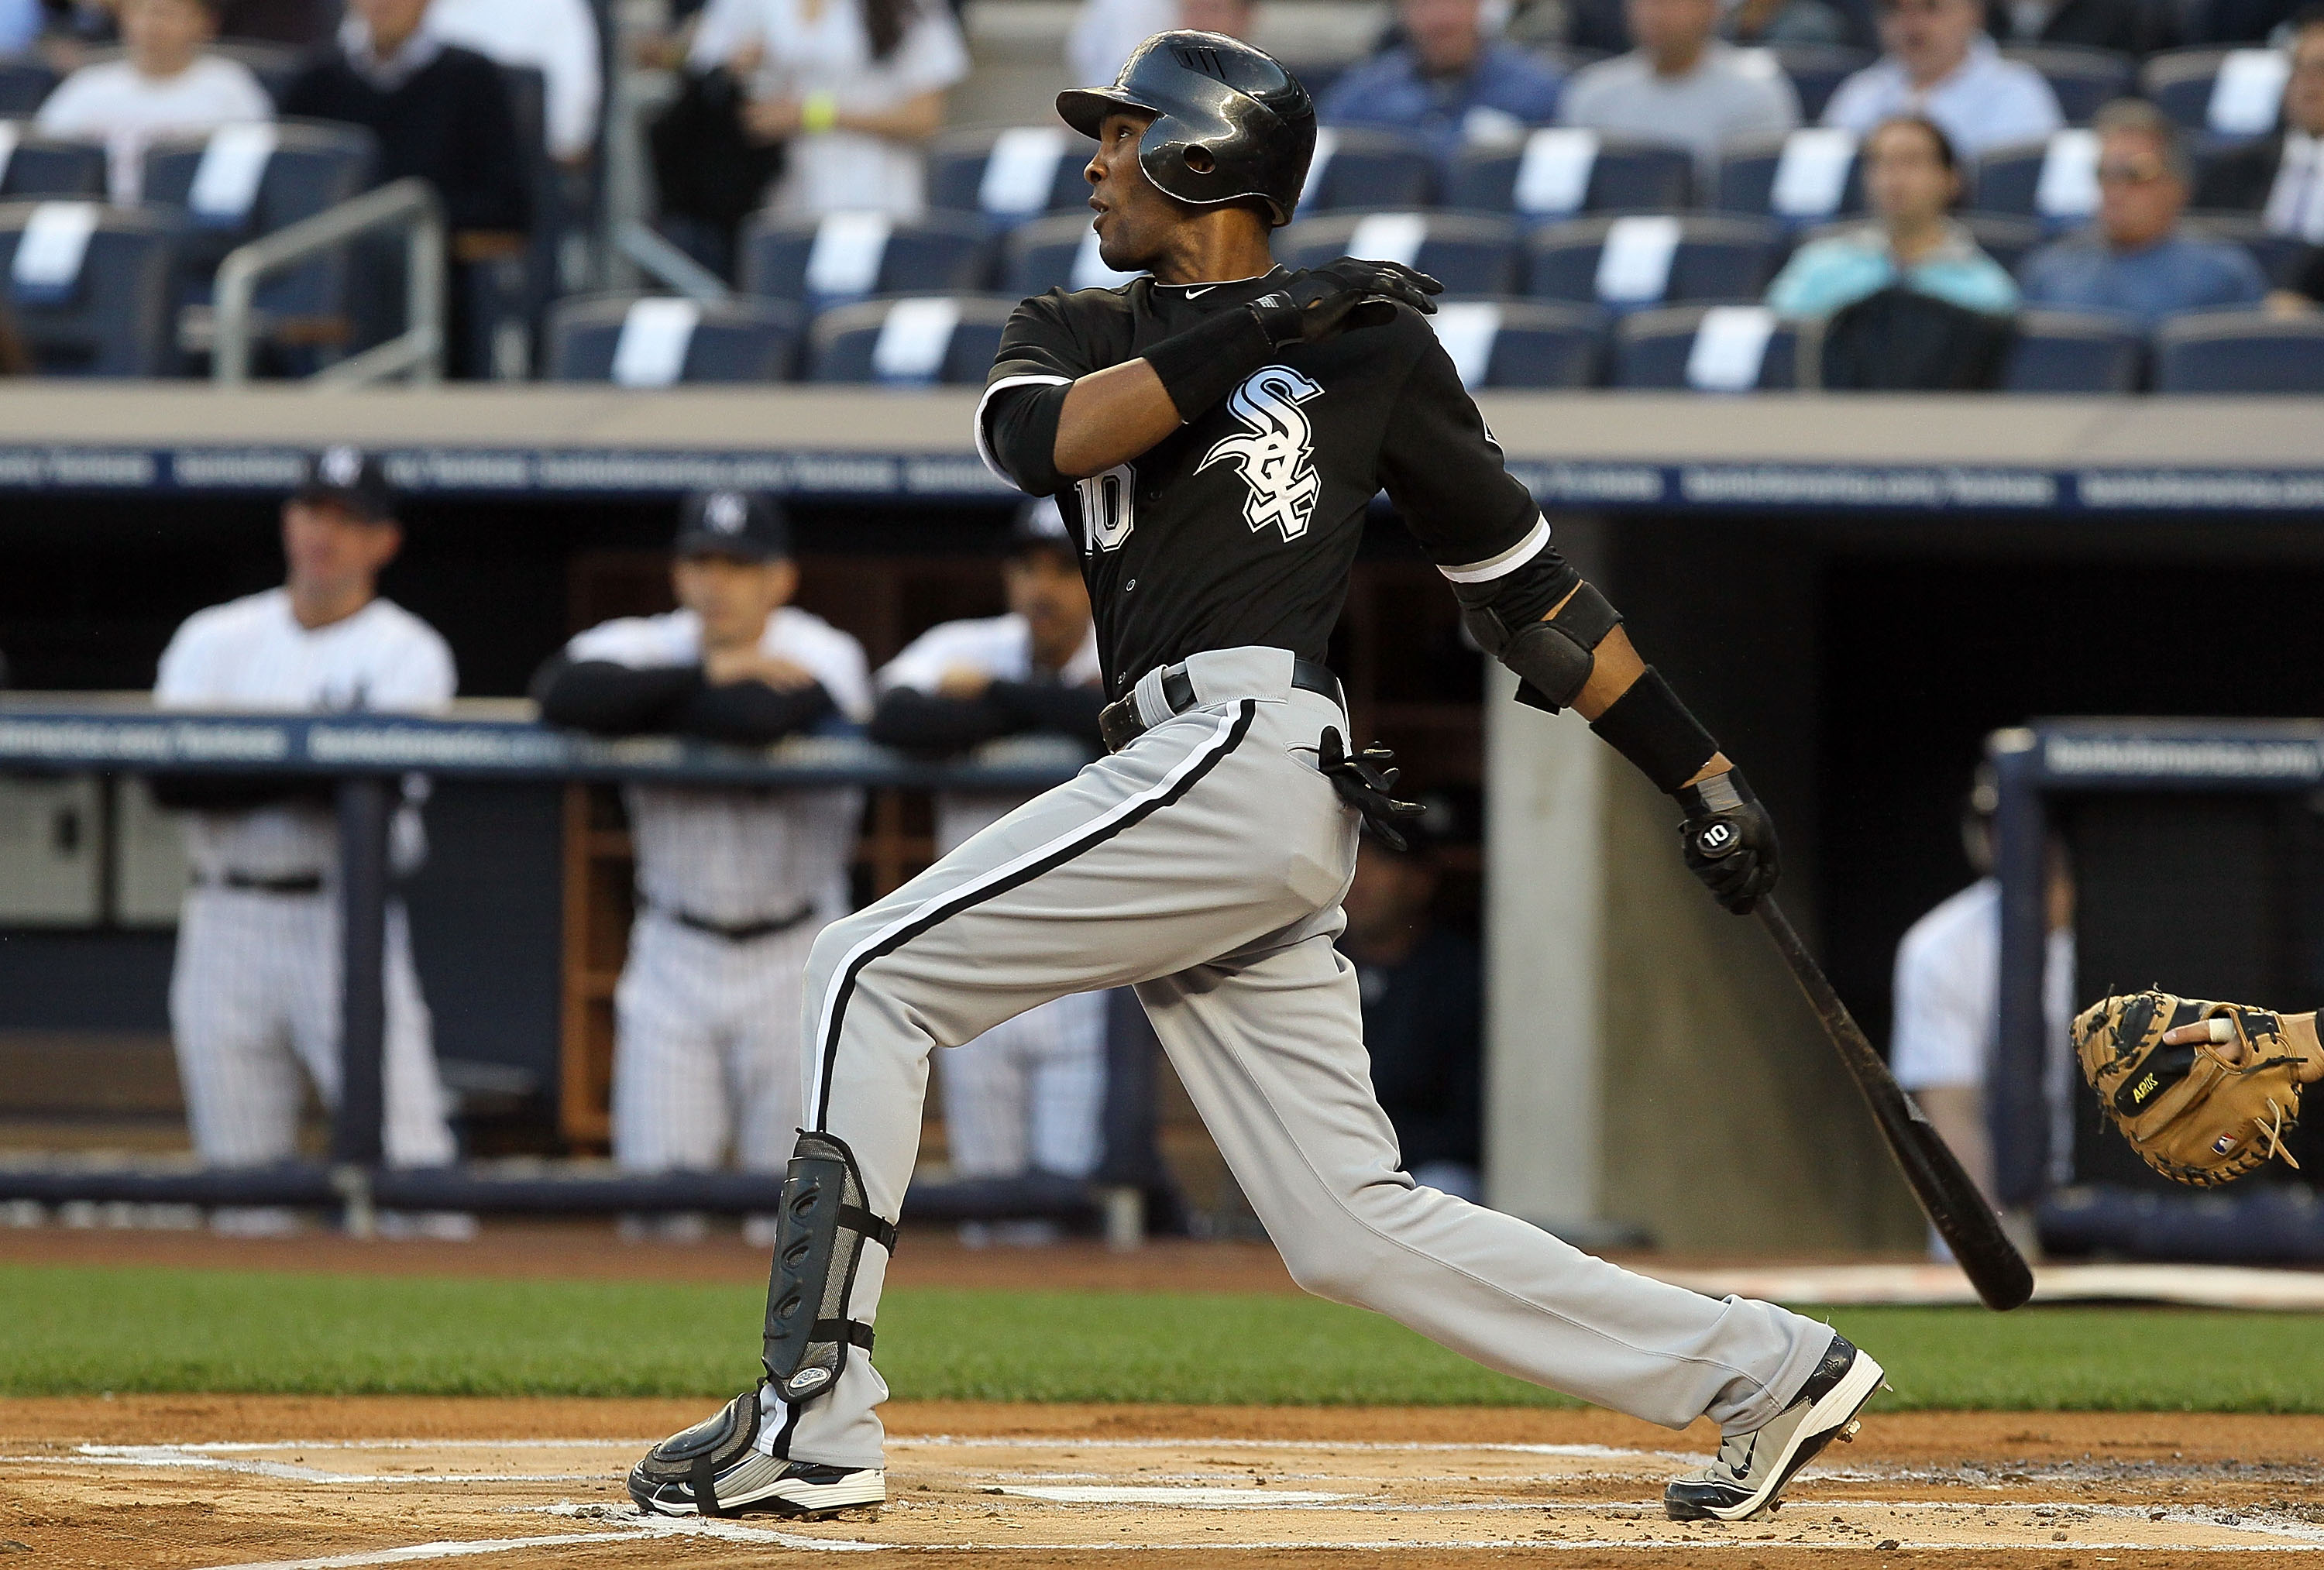 NEW YORK - APRIL 30:  Alexei Ramirez #10 of the Chicago White Sox follows through on a lead off base hit against the New York Yankees on April 30, 2010 at Yankee Stadium in the Bronx borough of New York City.  (Photo by Jim McIsaac/Getty Images)